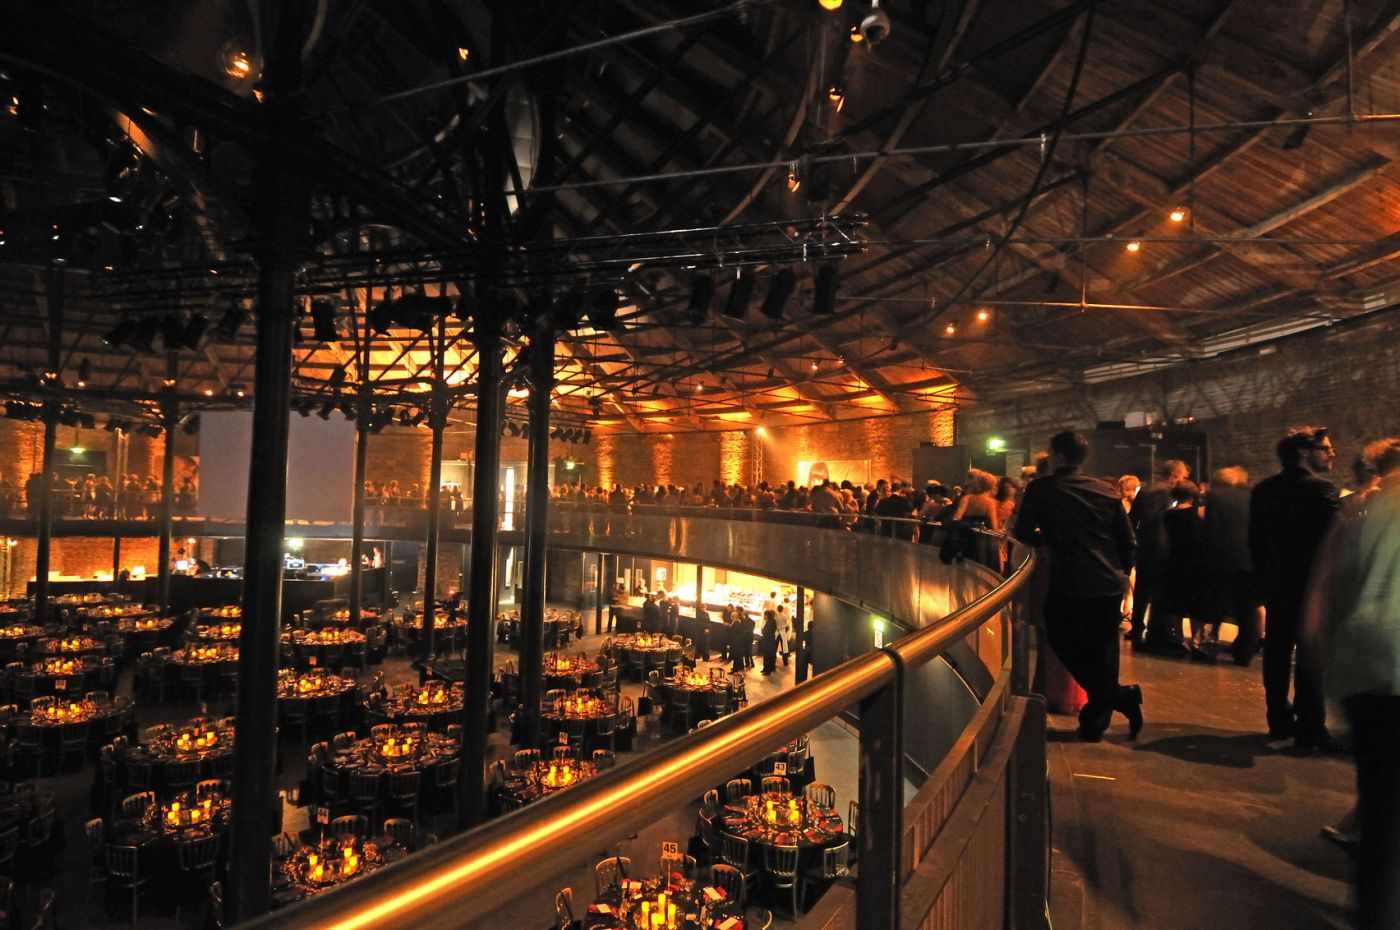 An image from the balcony at the roundhouse looking down on the main Space